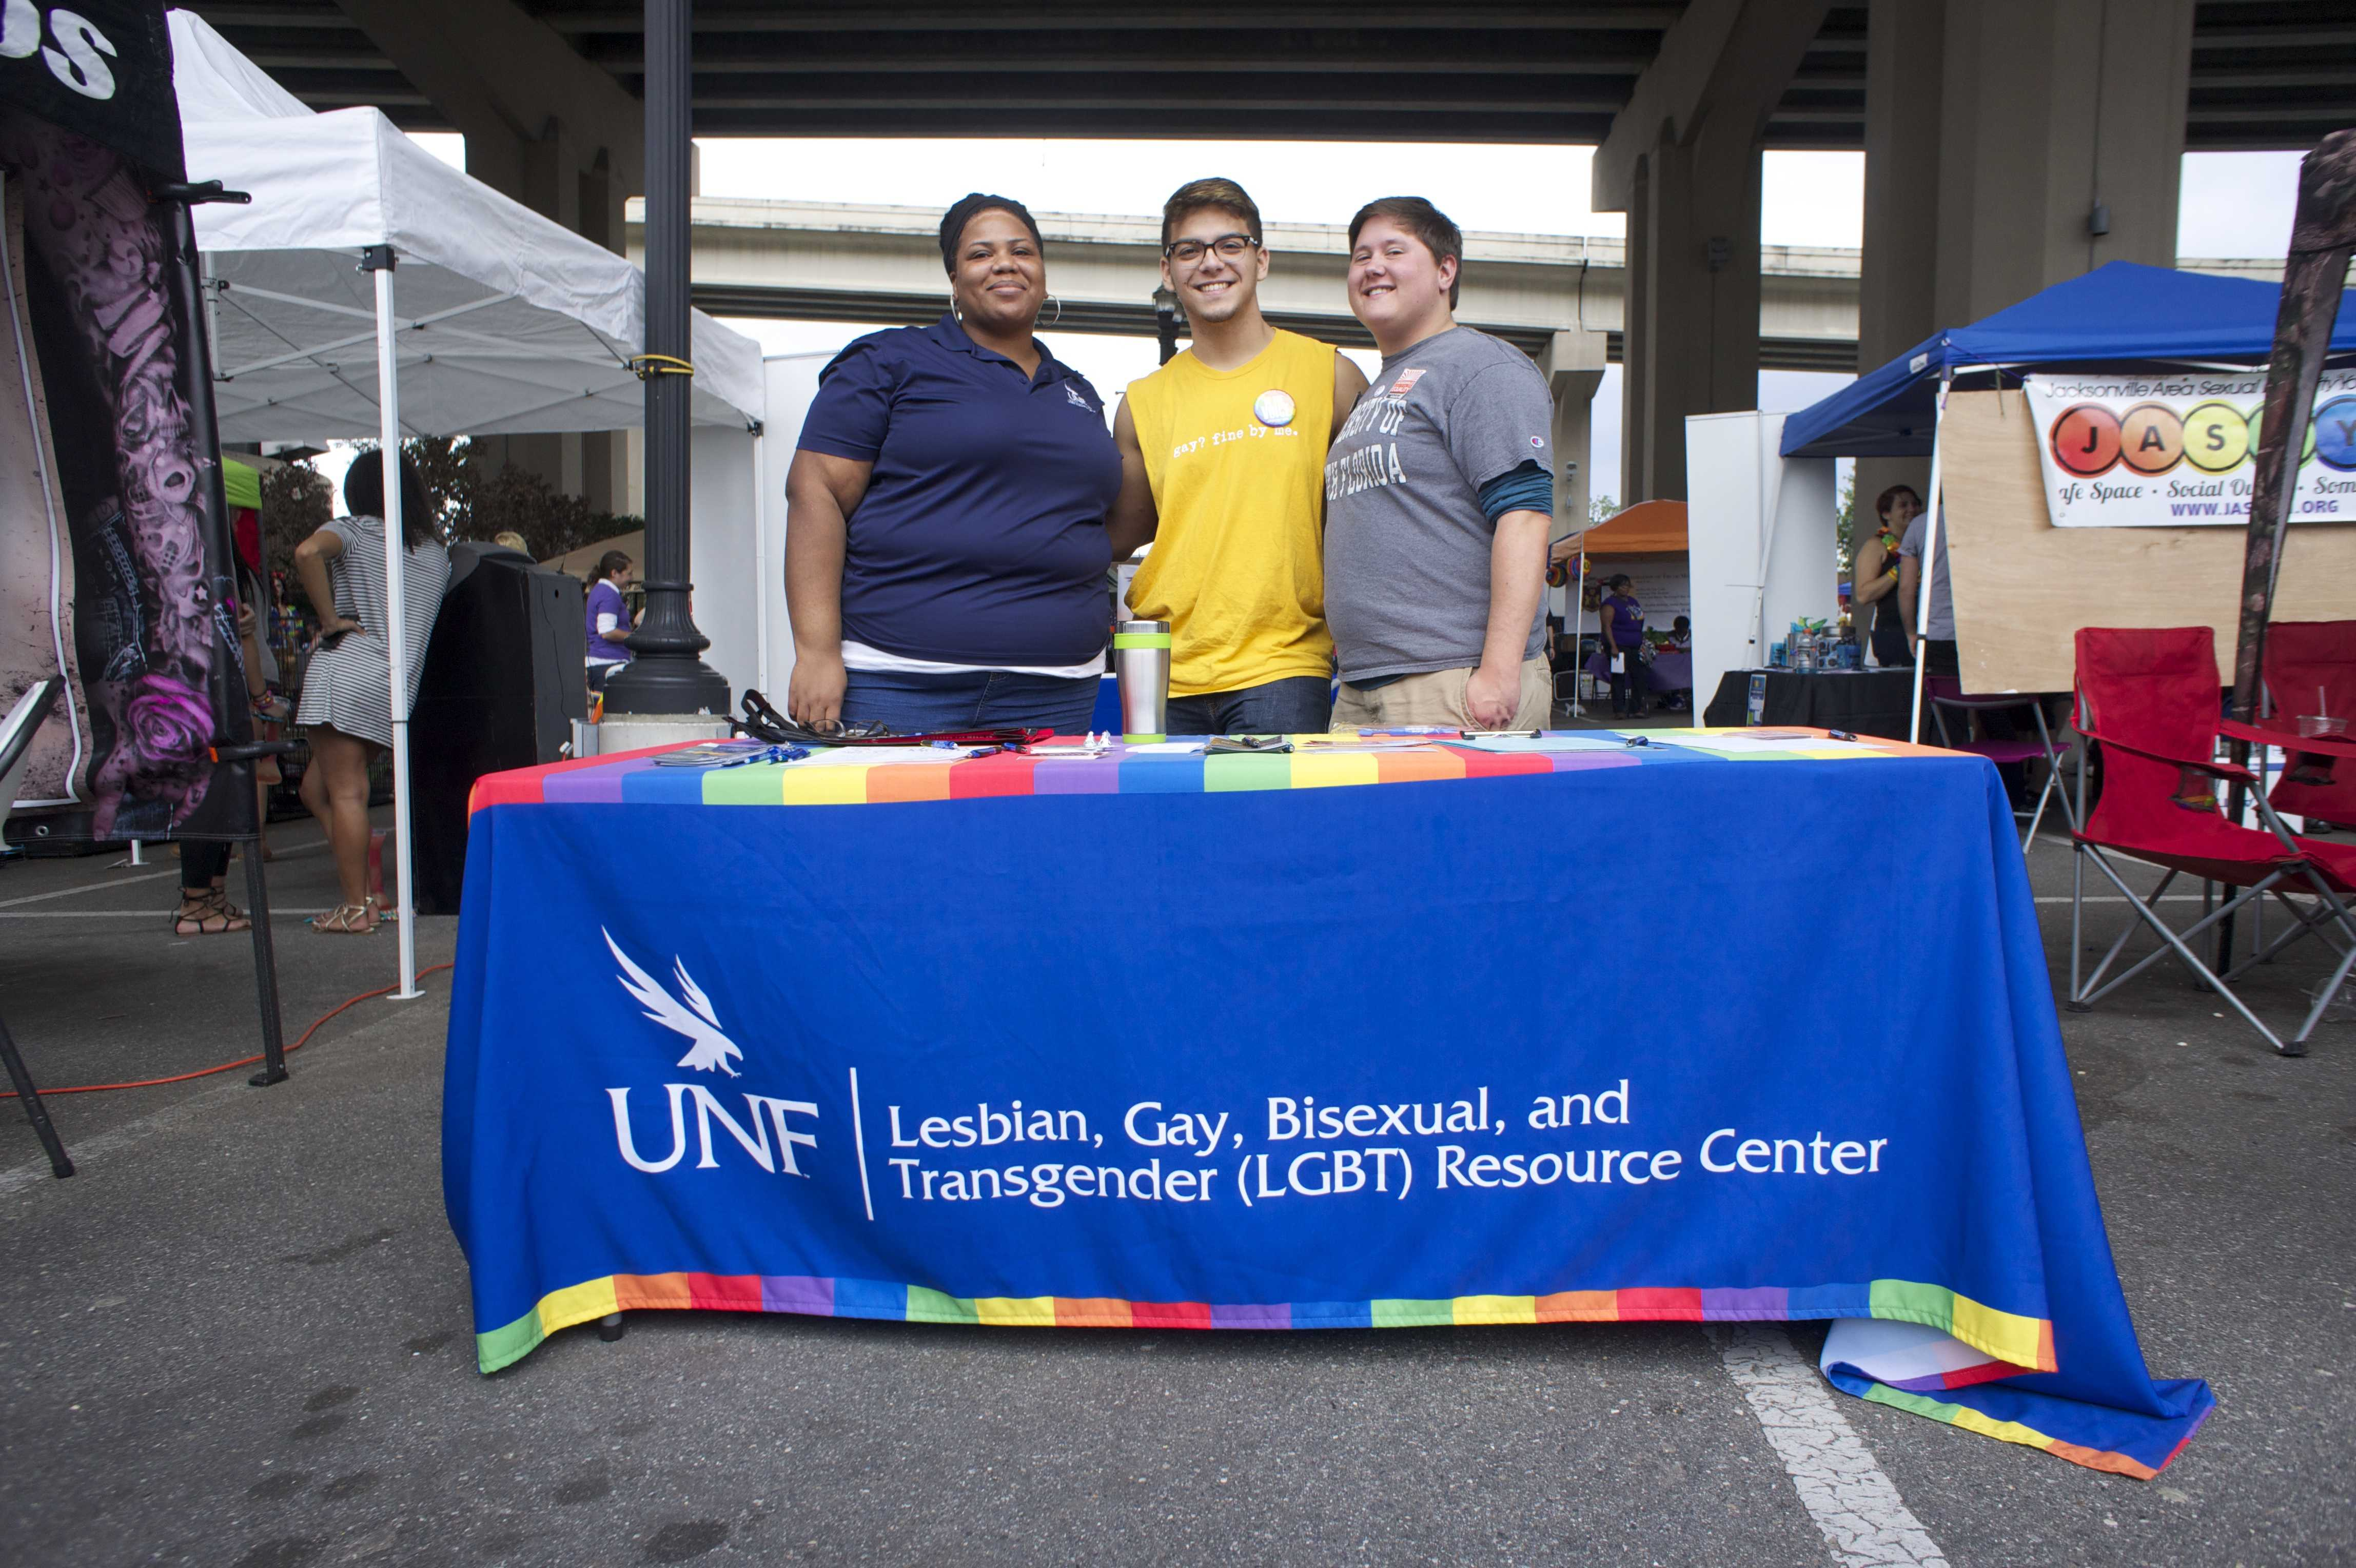 Junior psychology major Josef Kim (middle) stopped by the LGBT Center tent with Jake Moore, program director of the center. Kim is a frequent visitor to the center on campus, spreads the word about their upcoming events and coordinates other events for the center. <i>Photo by Rachel Cazares</i>